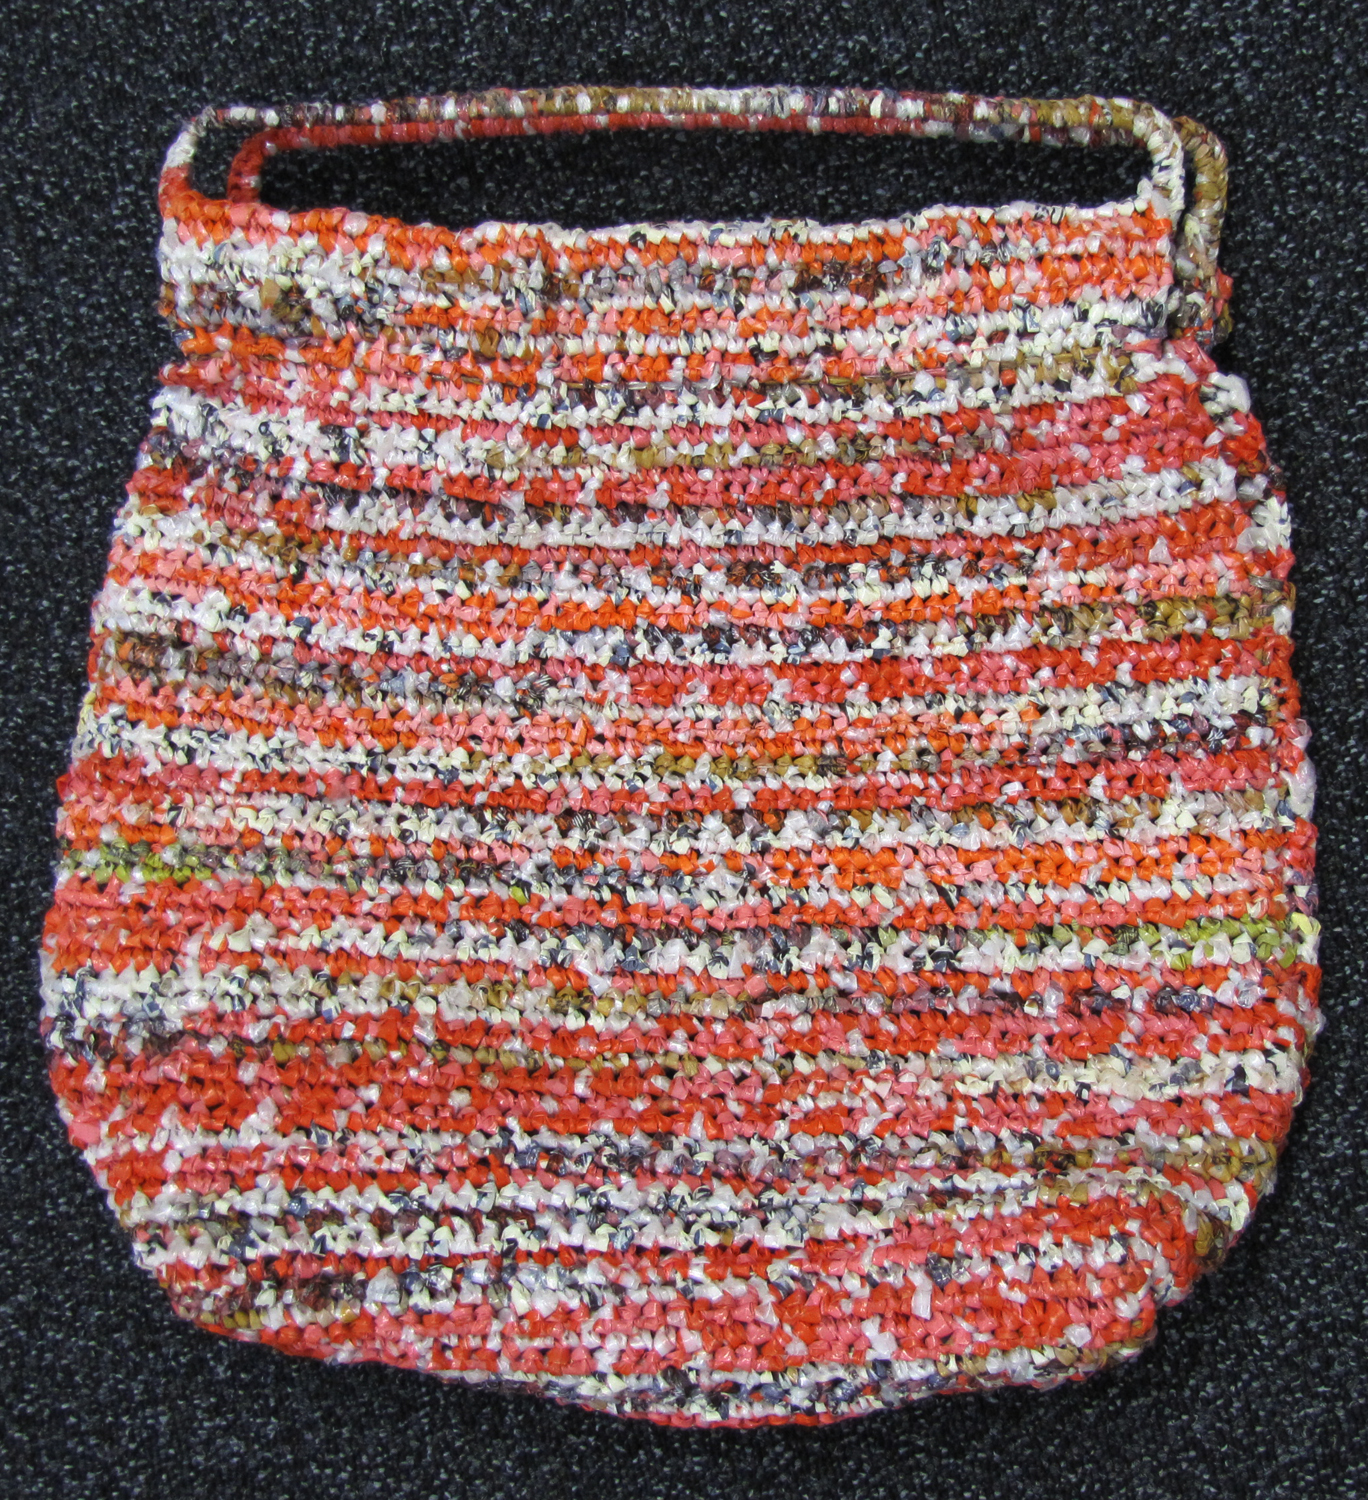 Photographs Of Coloured Bag Crocheted By Marjorie Bligh From Plastic